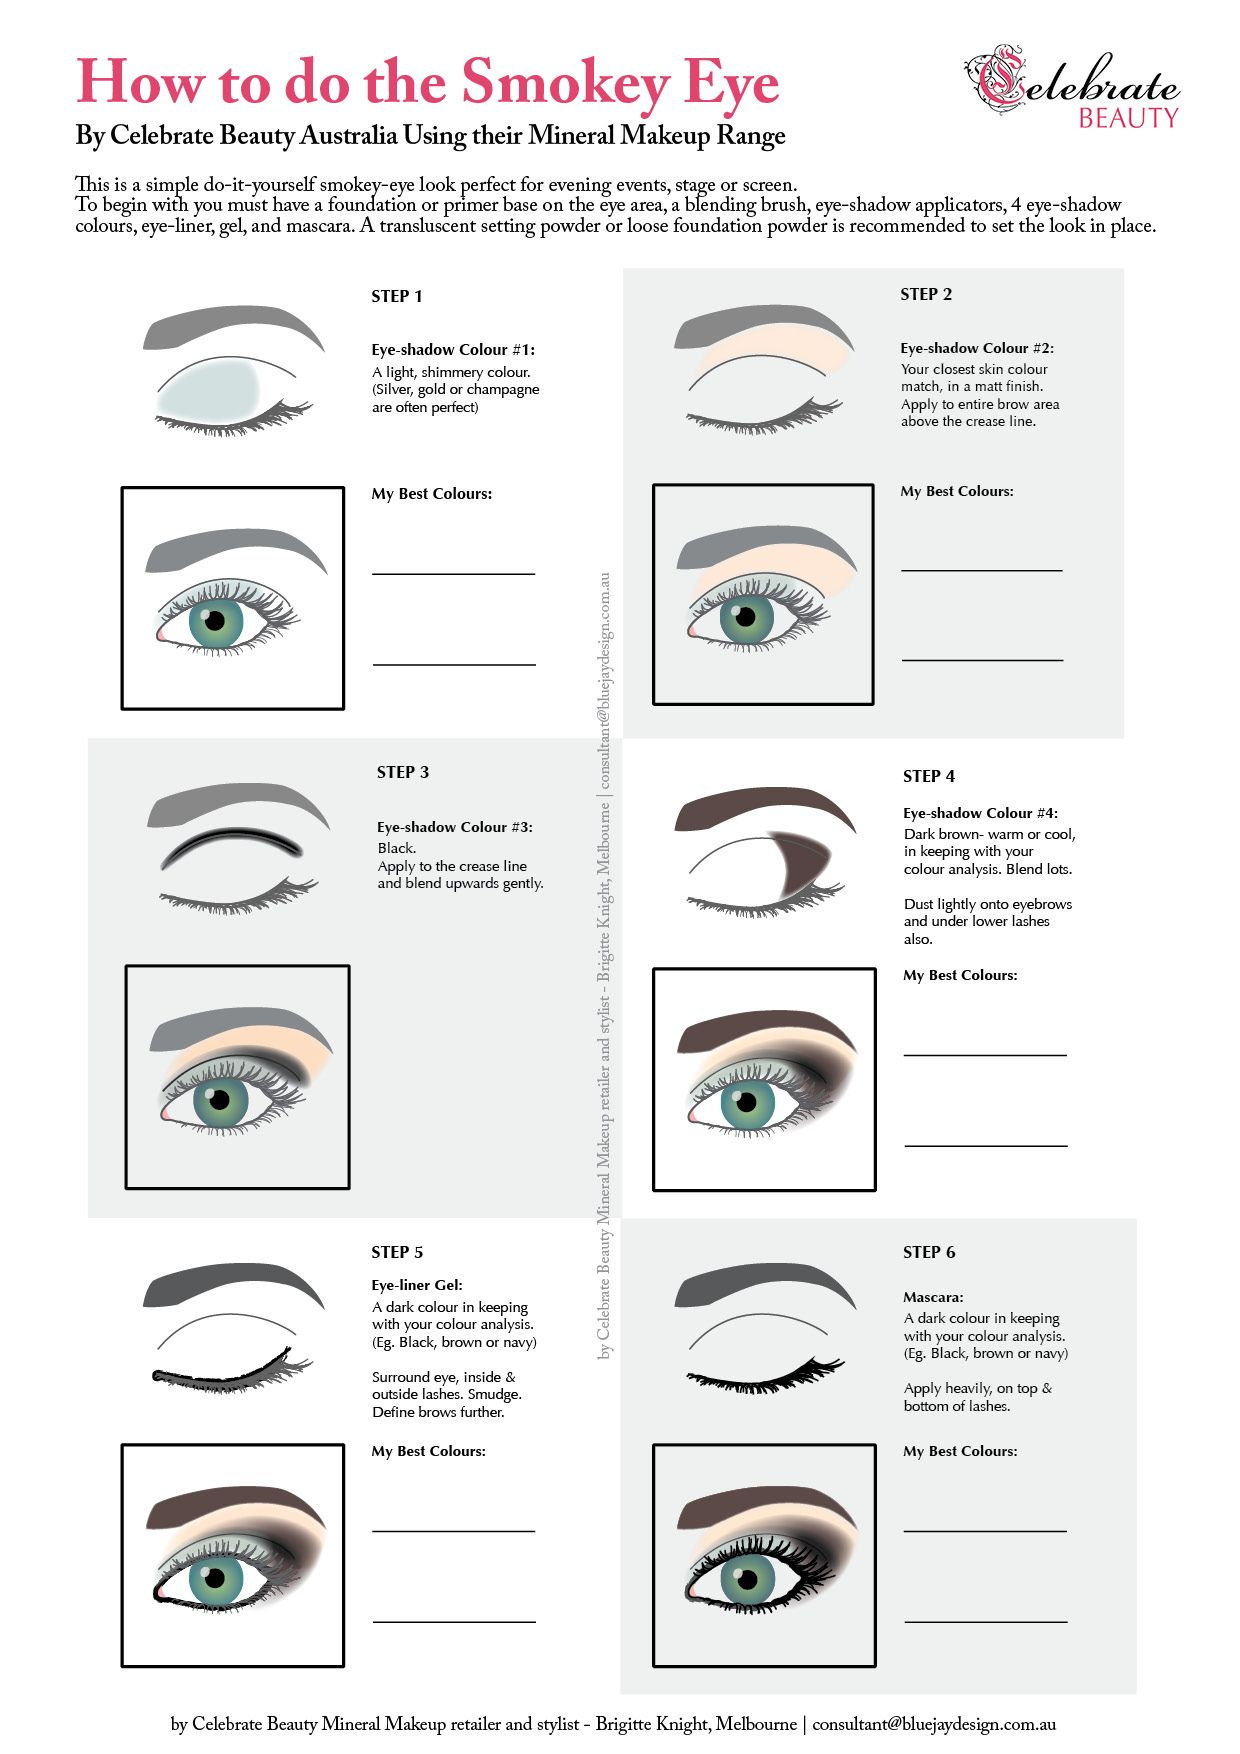 How To Do The Smokey Eye Diagram For Makeup Application Visit My Board For  The Upcoming